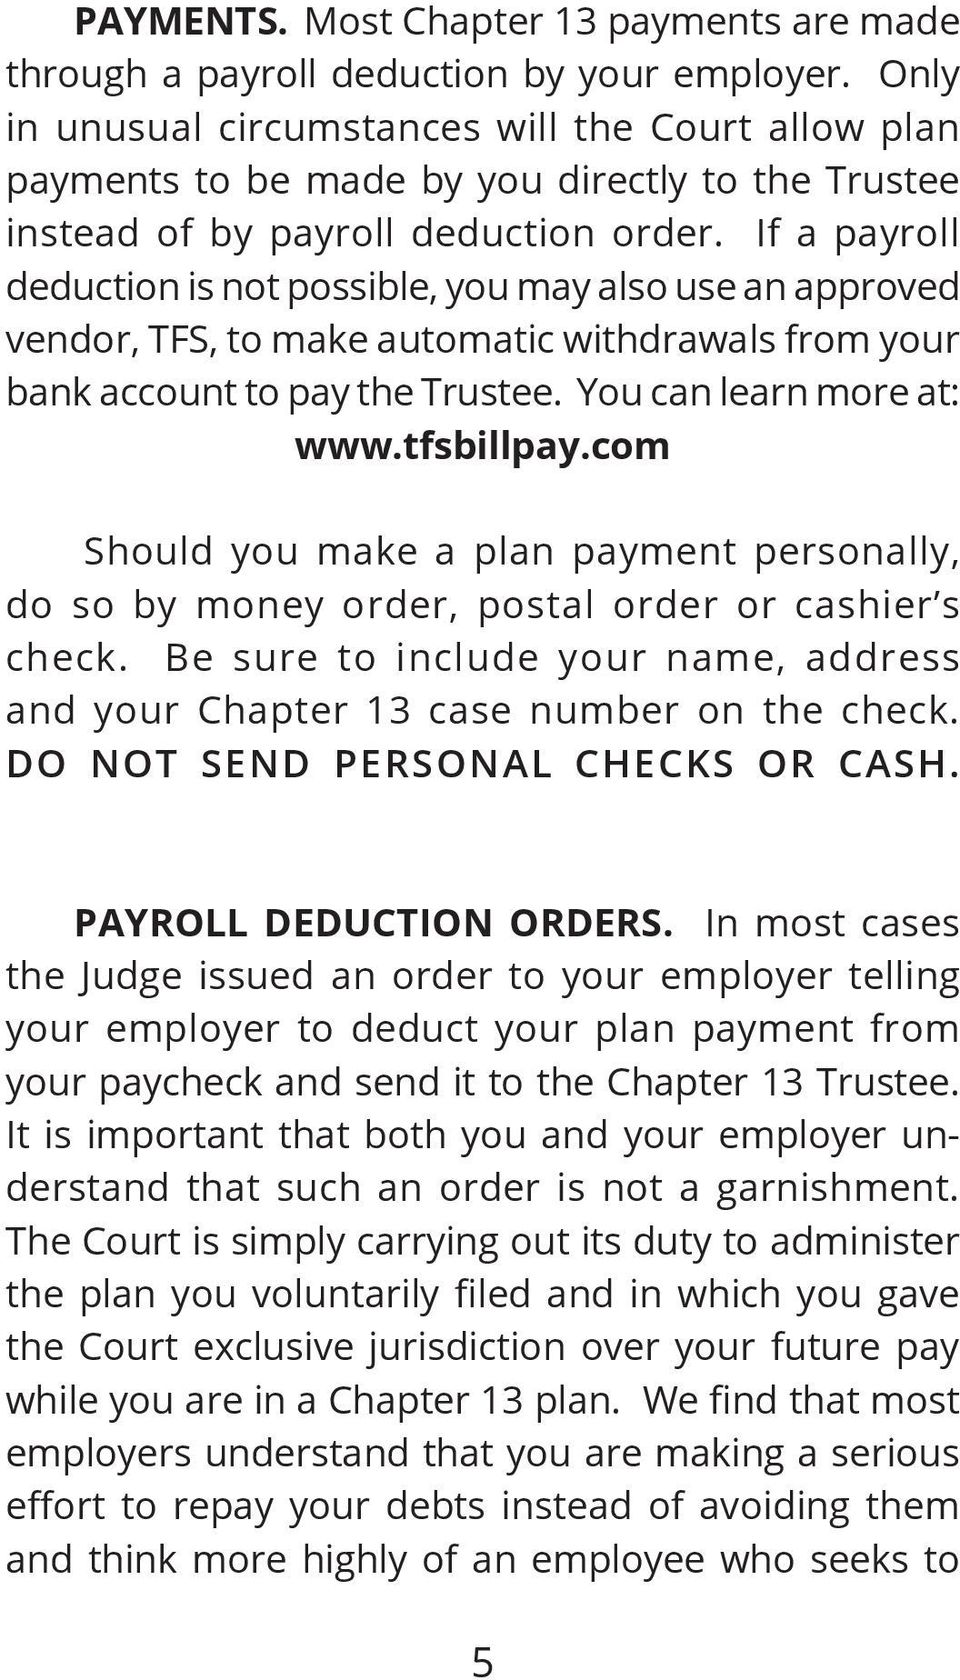 If a payroll deduction is not possible, you may also use an approved vendor, TFS, to make automatic withdrawals from your bank account to pay the Trustee. You can learn more at: www.tfsbillpay.